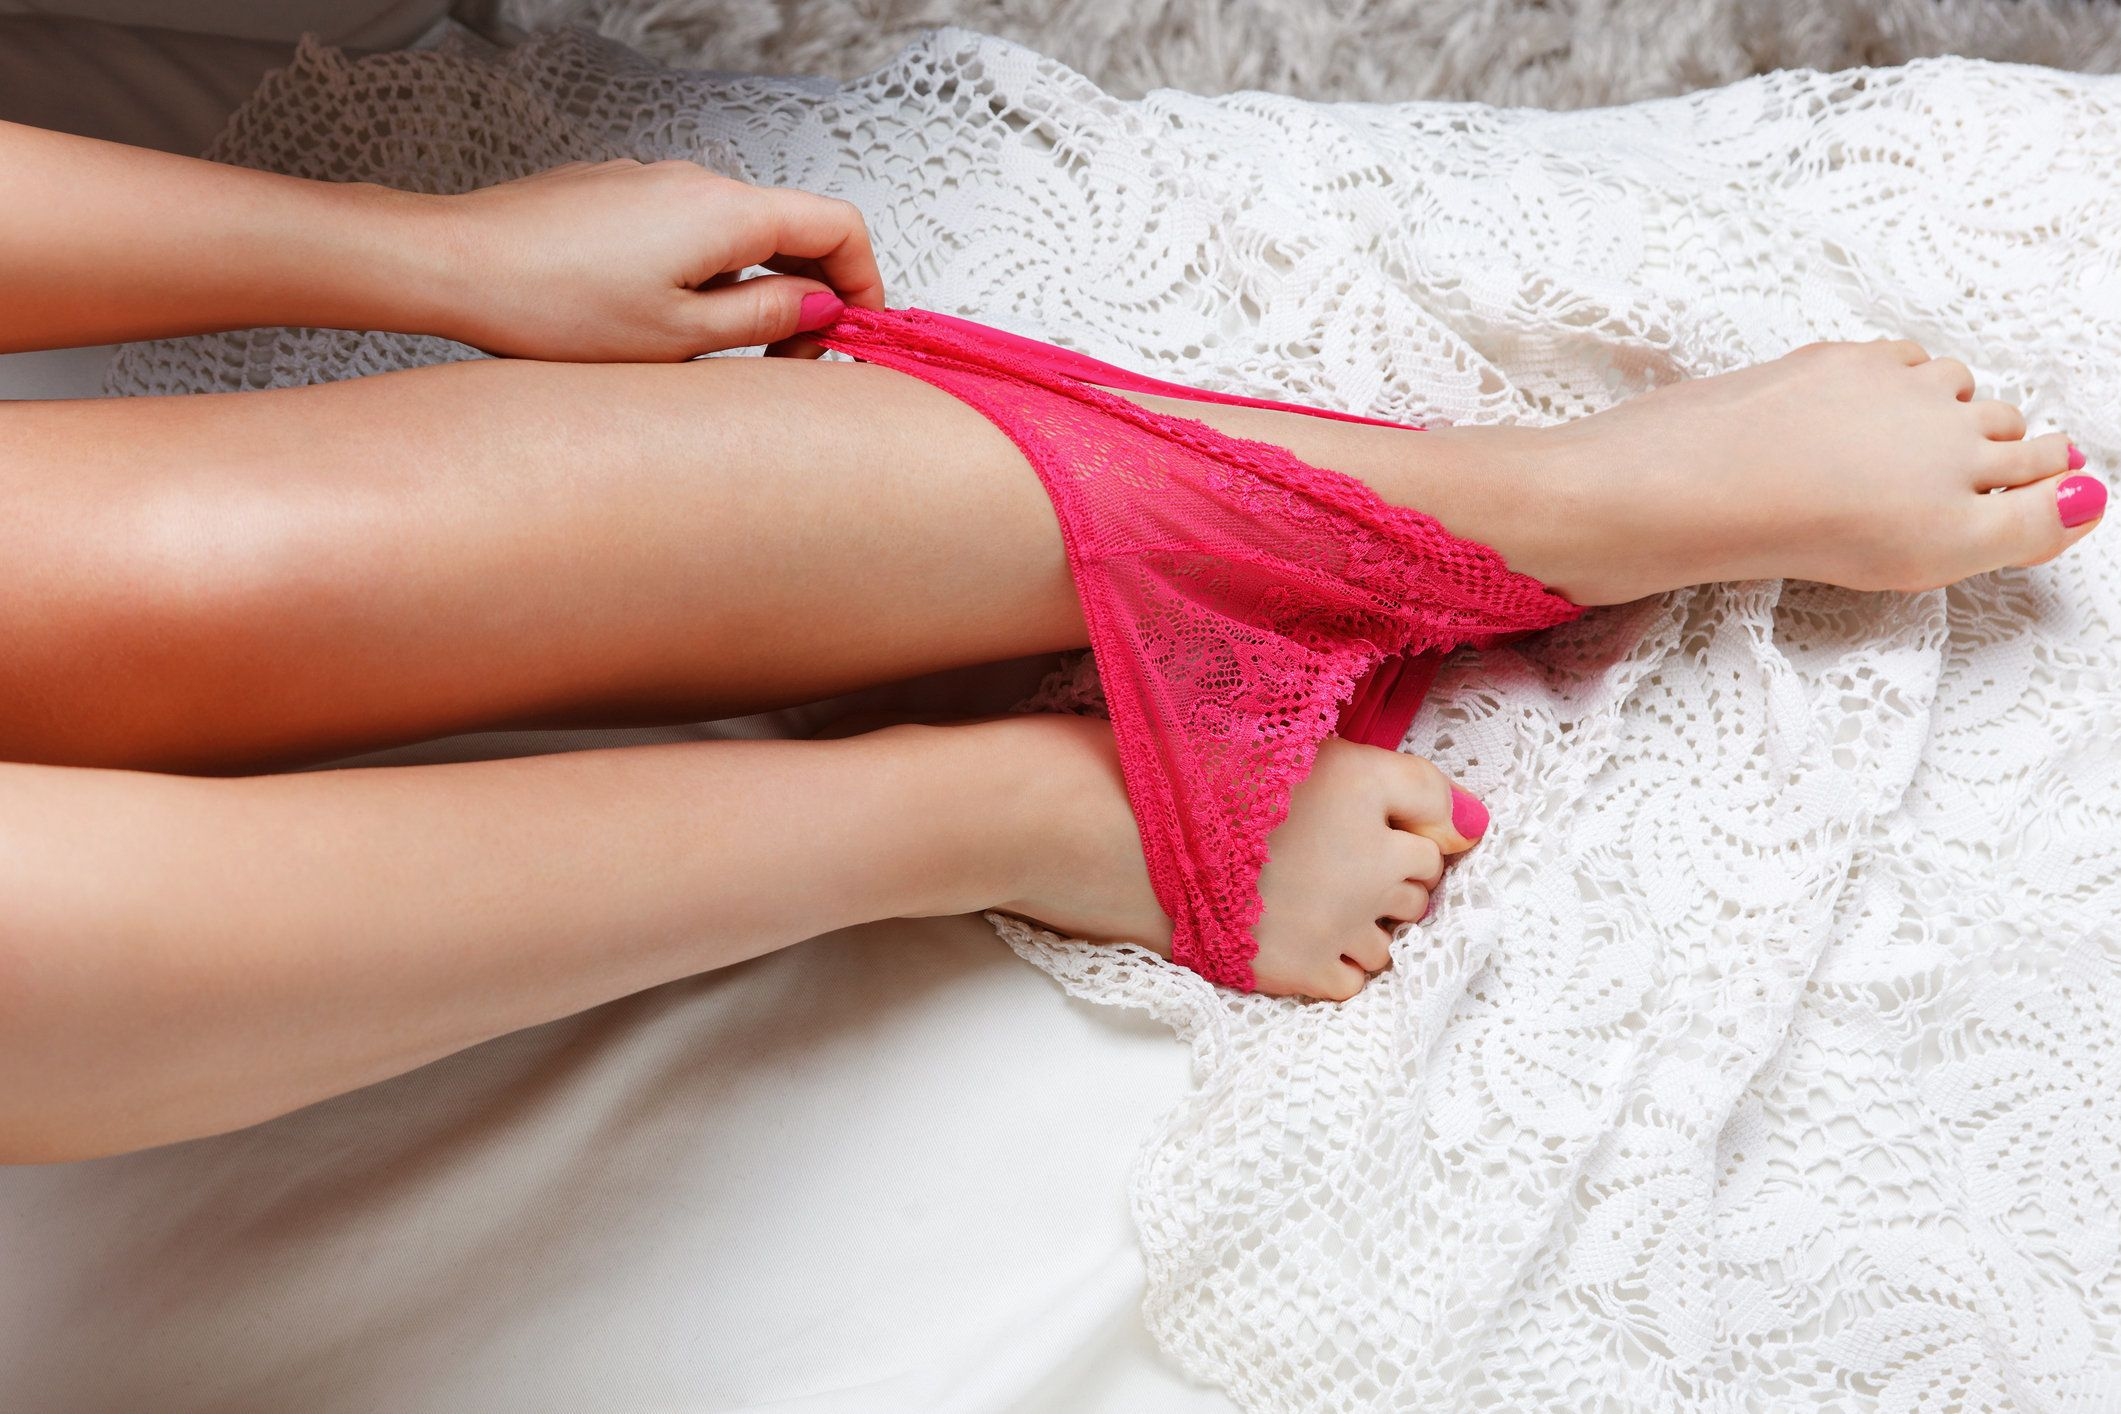 Why Thongs Could Be Bad For Your Health, And Other Underwear